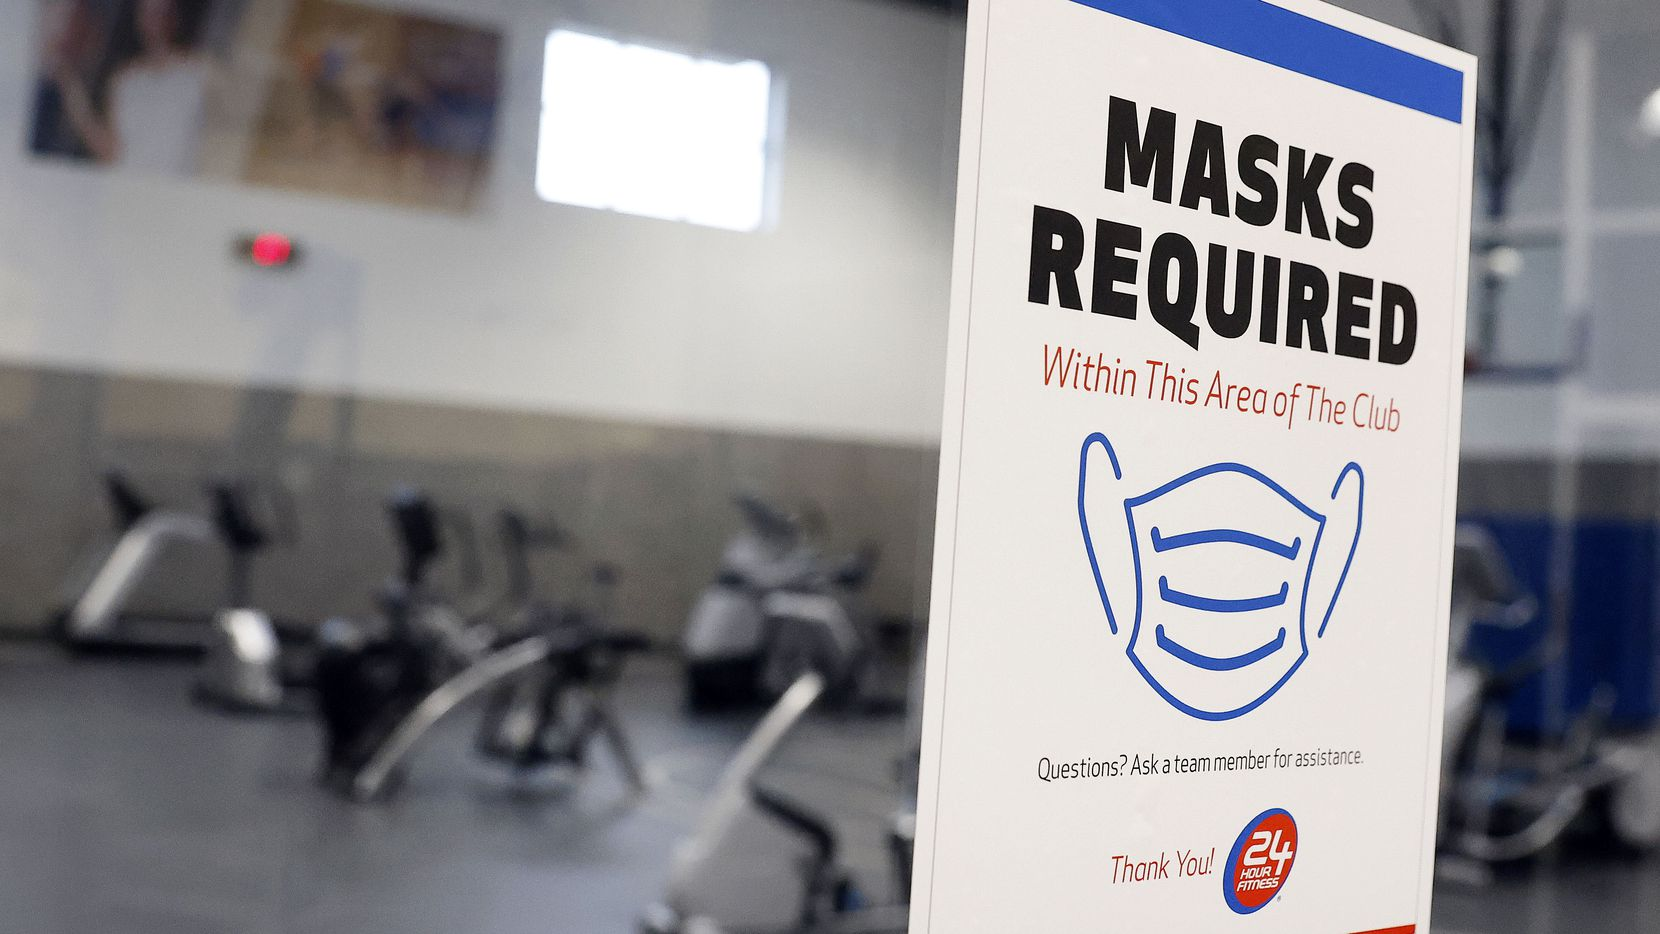 The 24 Hour Fitness in McKinney, Texas, set up their gymnasium as a mask only workout area, Wednesday, March 10, 2021. Members who feel more comfortable in a mask-only environment have aerobic machines and dumbbells they can use. As gyms react to the lifting of Gov. Abbott's mask mandate and other restrictions, most have seen mask requirements as a binary decision. 24 Hour Fitness will attempt to keep a leg on both sides of the aisle establishing masked and mask-free zones within each of its fitness clubs.